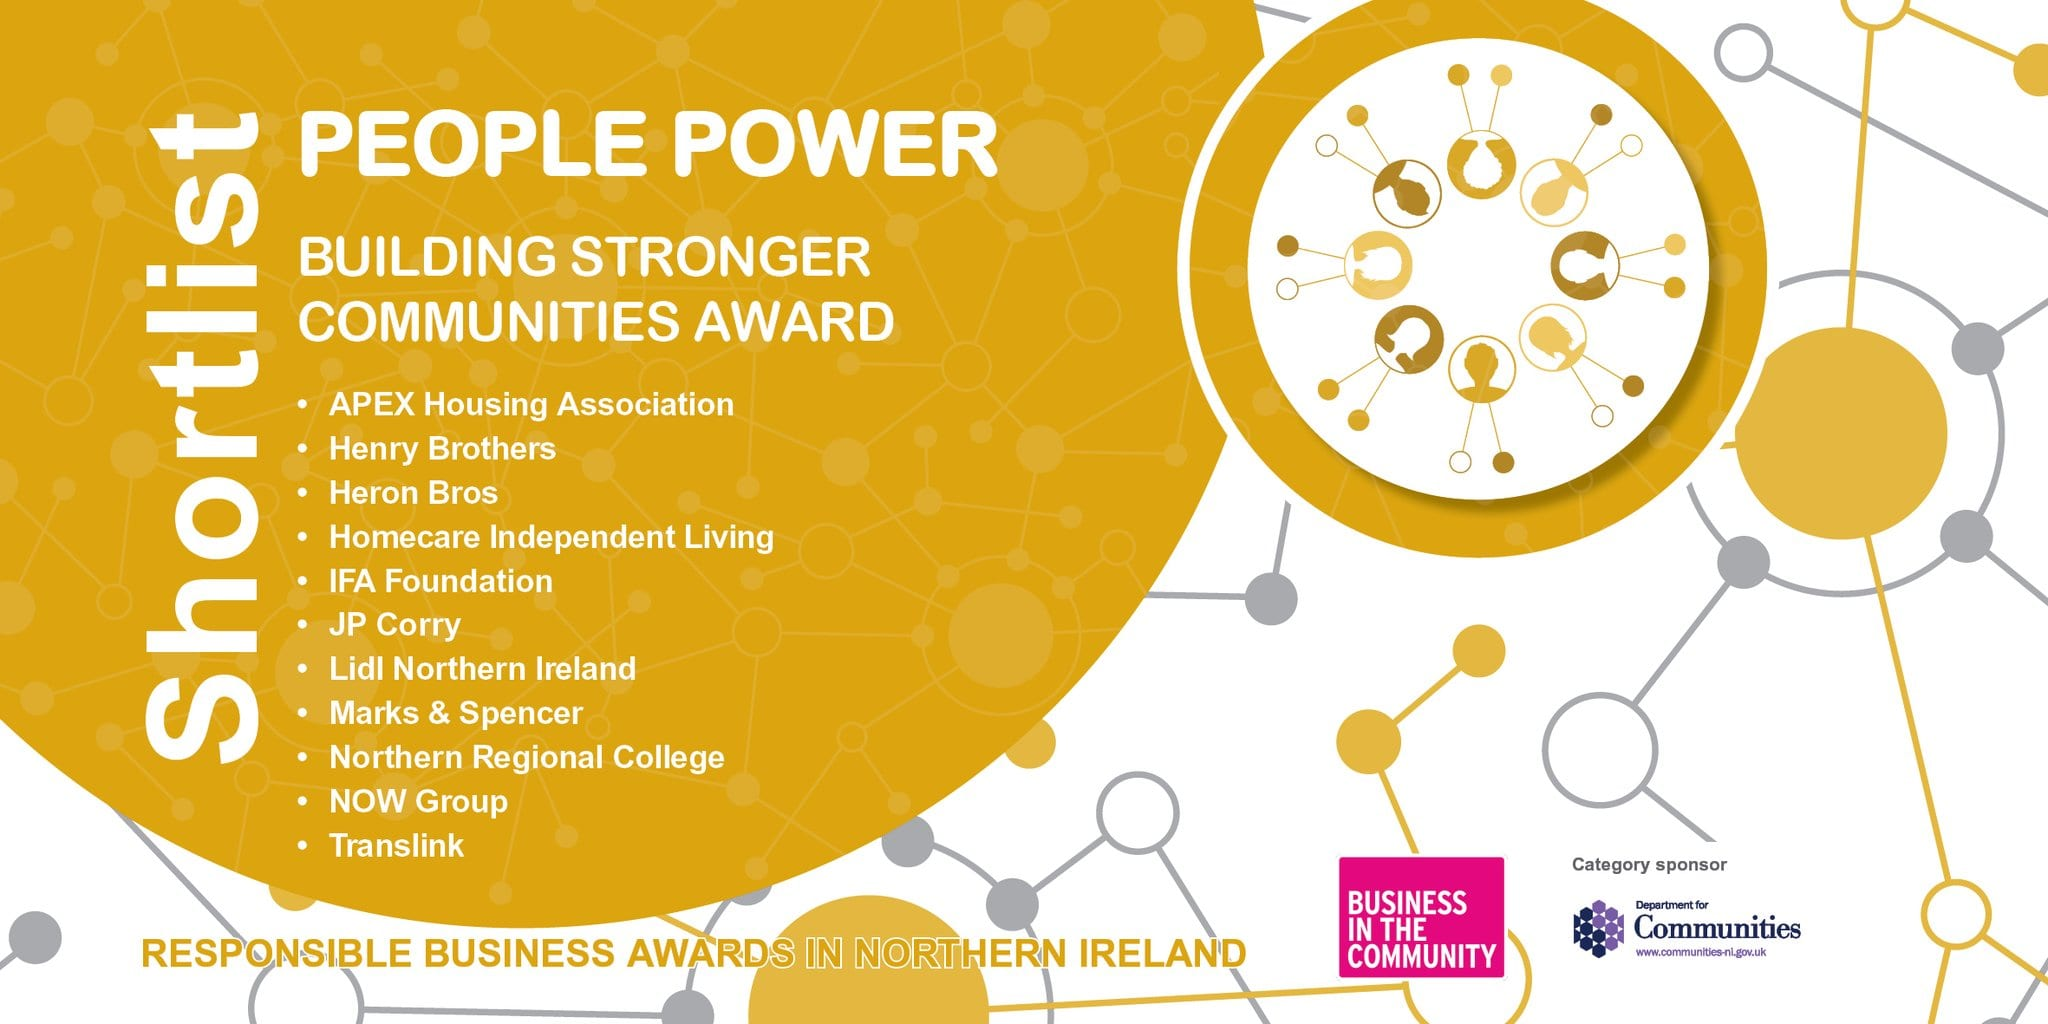 Business in the Community - Building Stronger Communities Award 2018 - Finalist